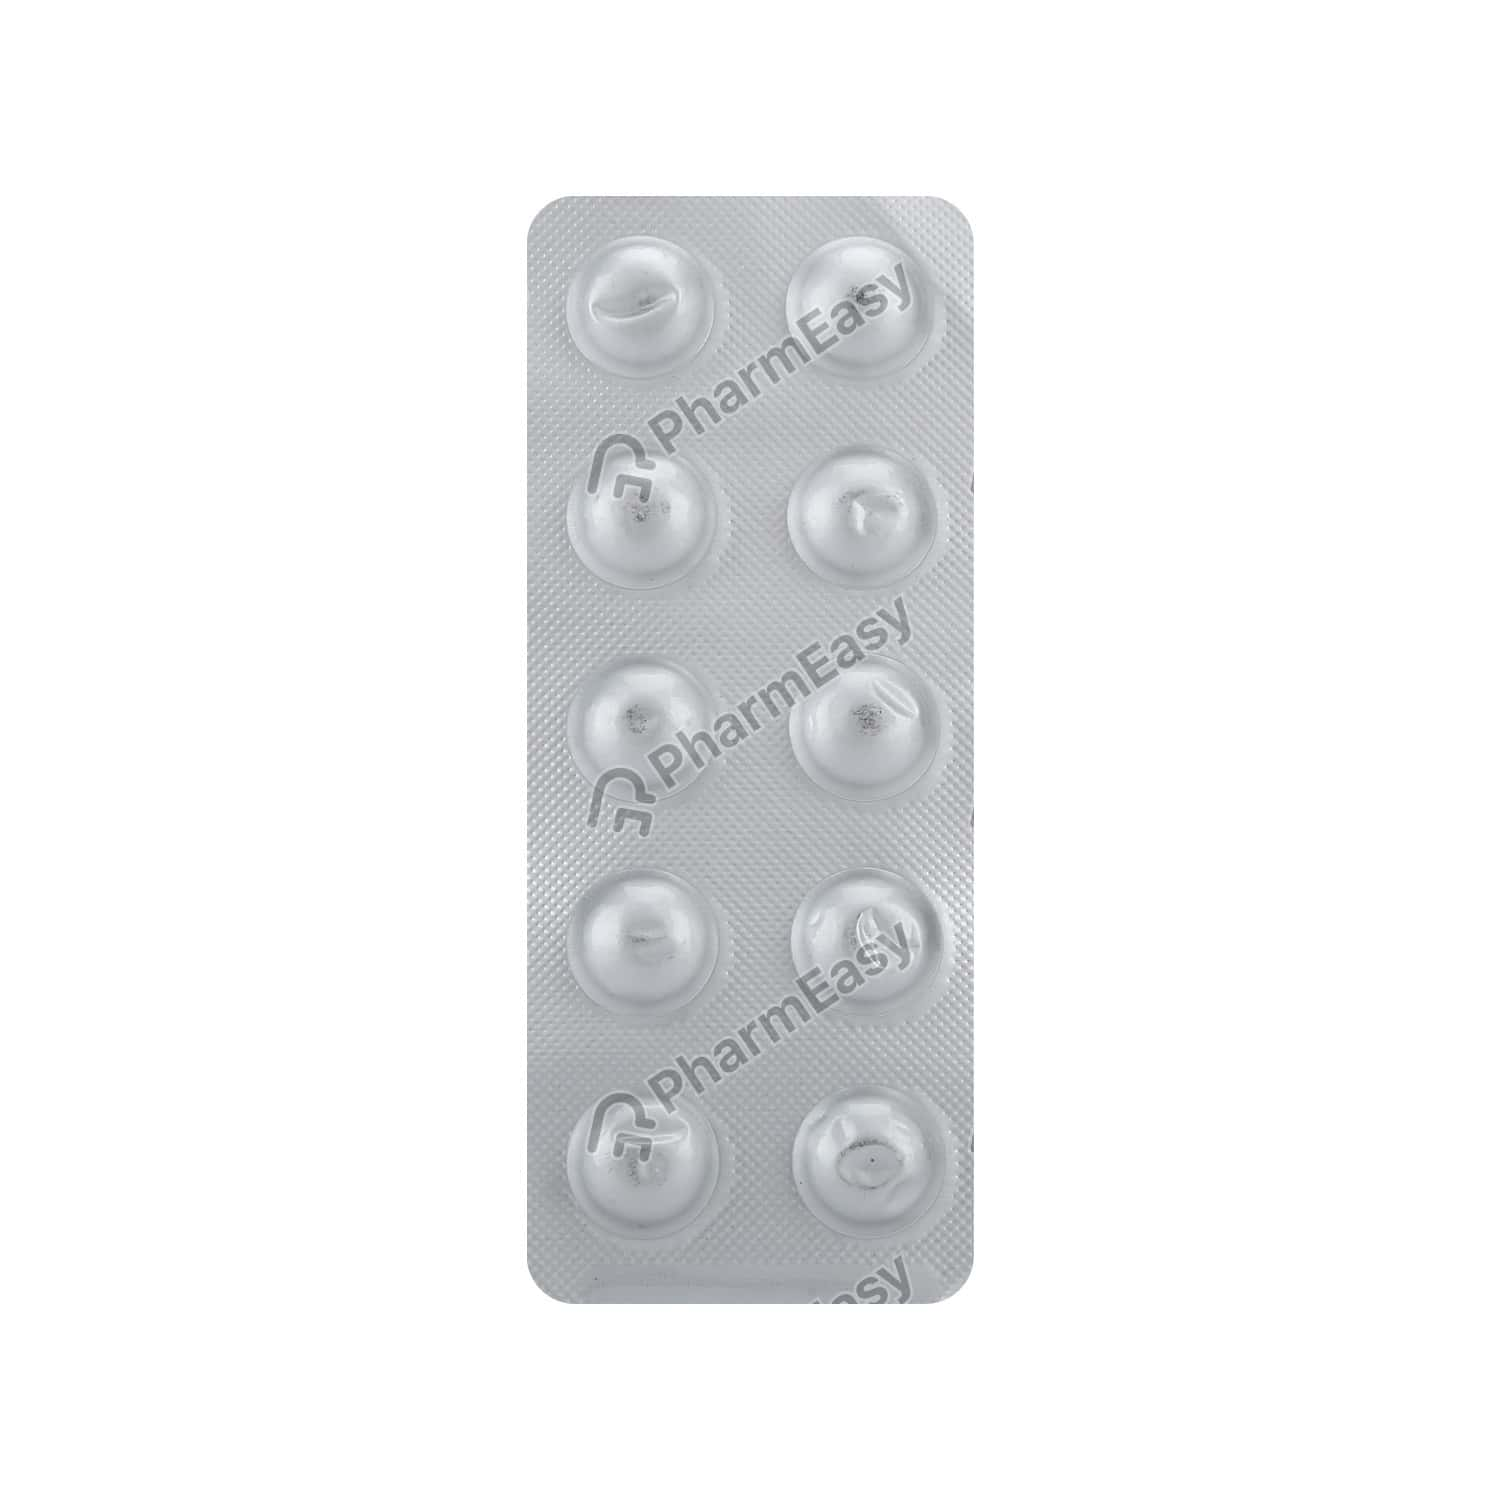 Rosave D 10mg Tablet